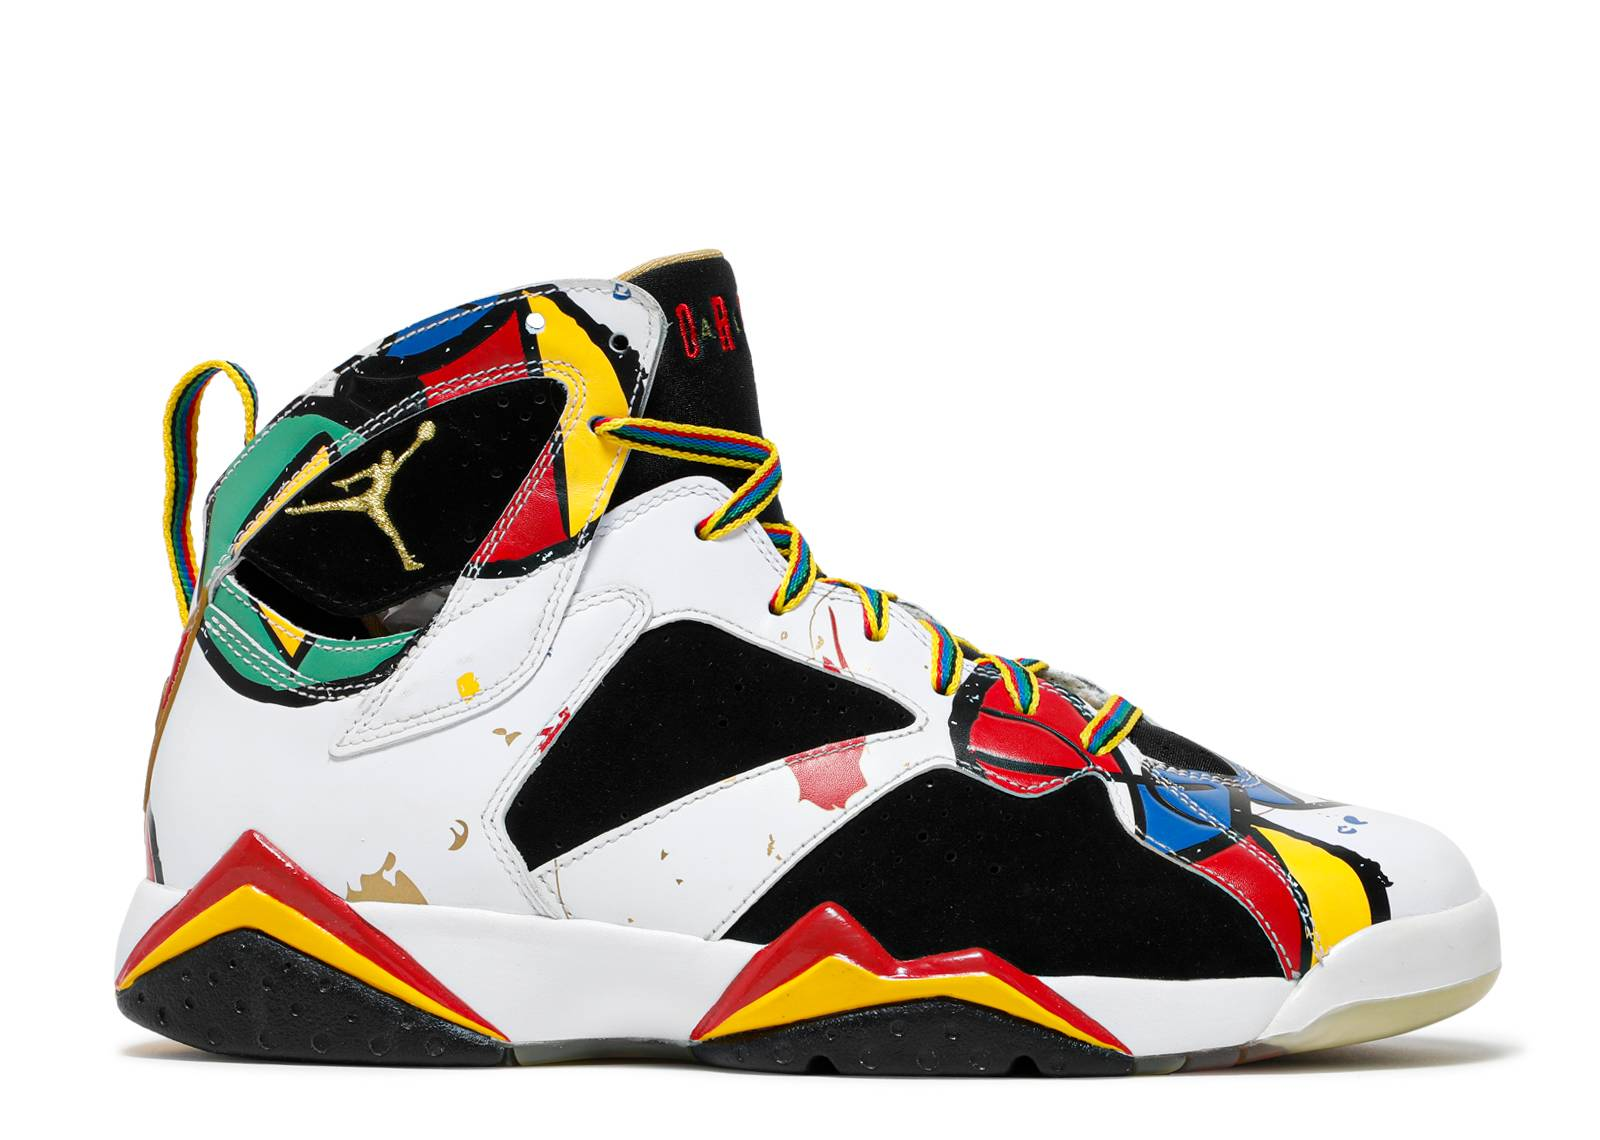 c605d6c52f51d0 Air Jordan 7 Retro Oc